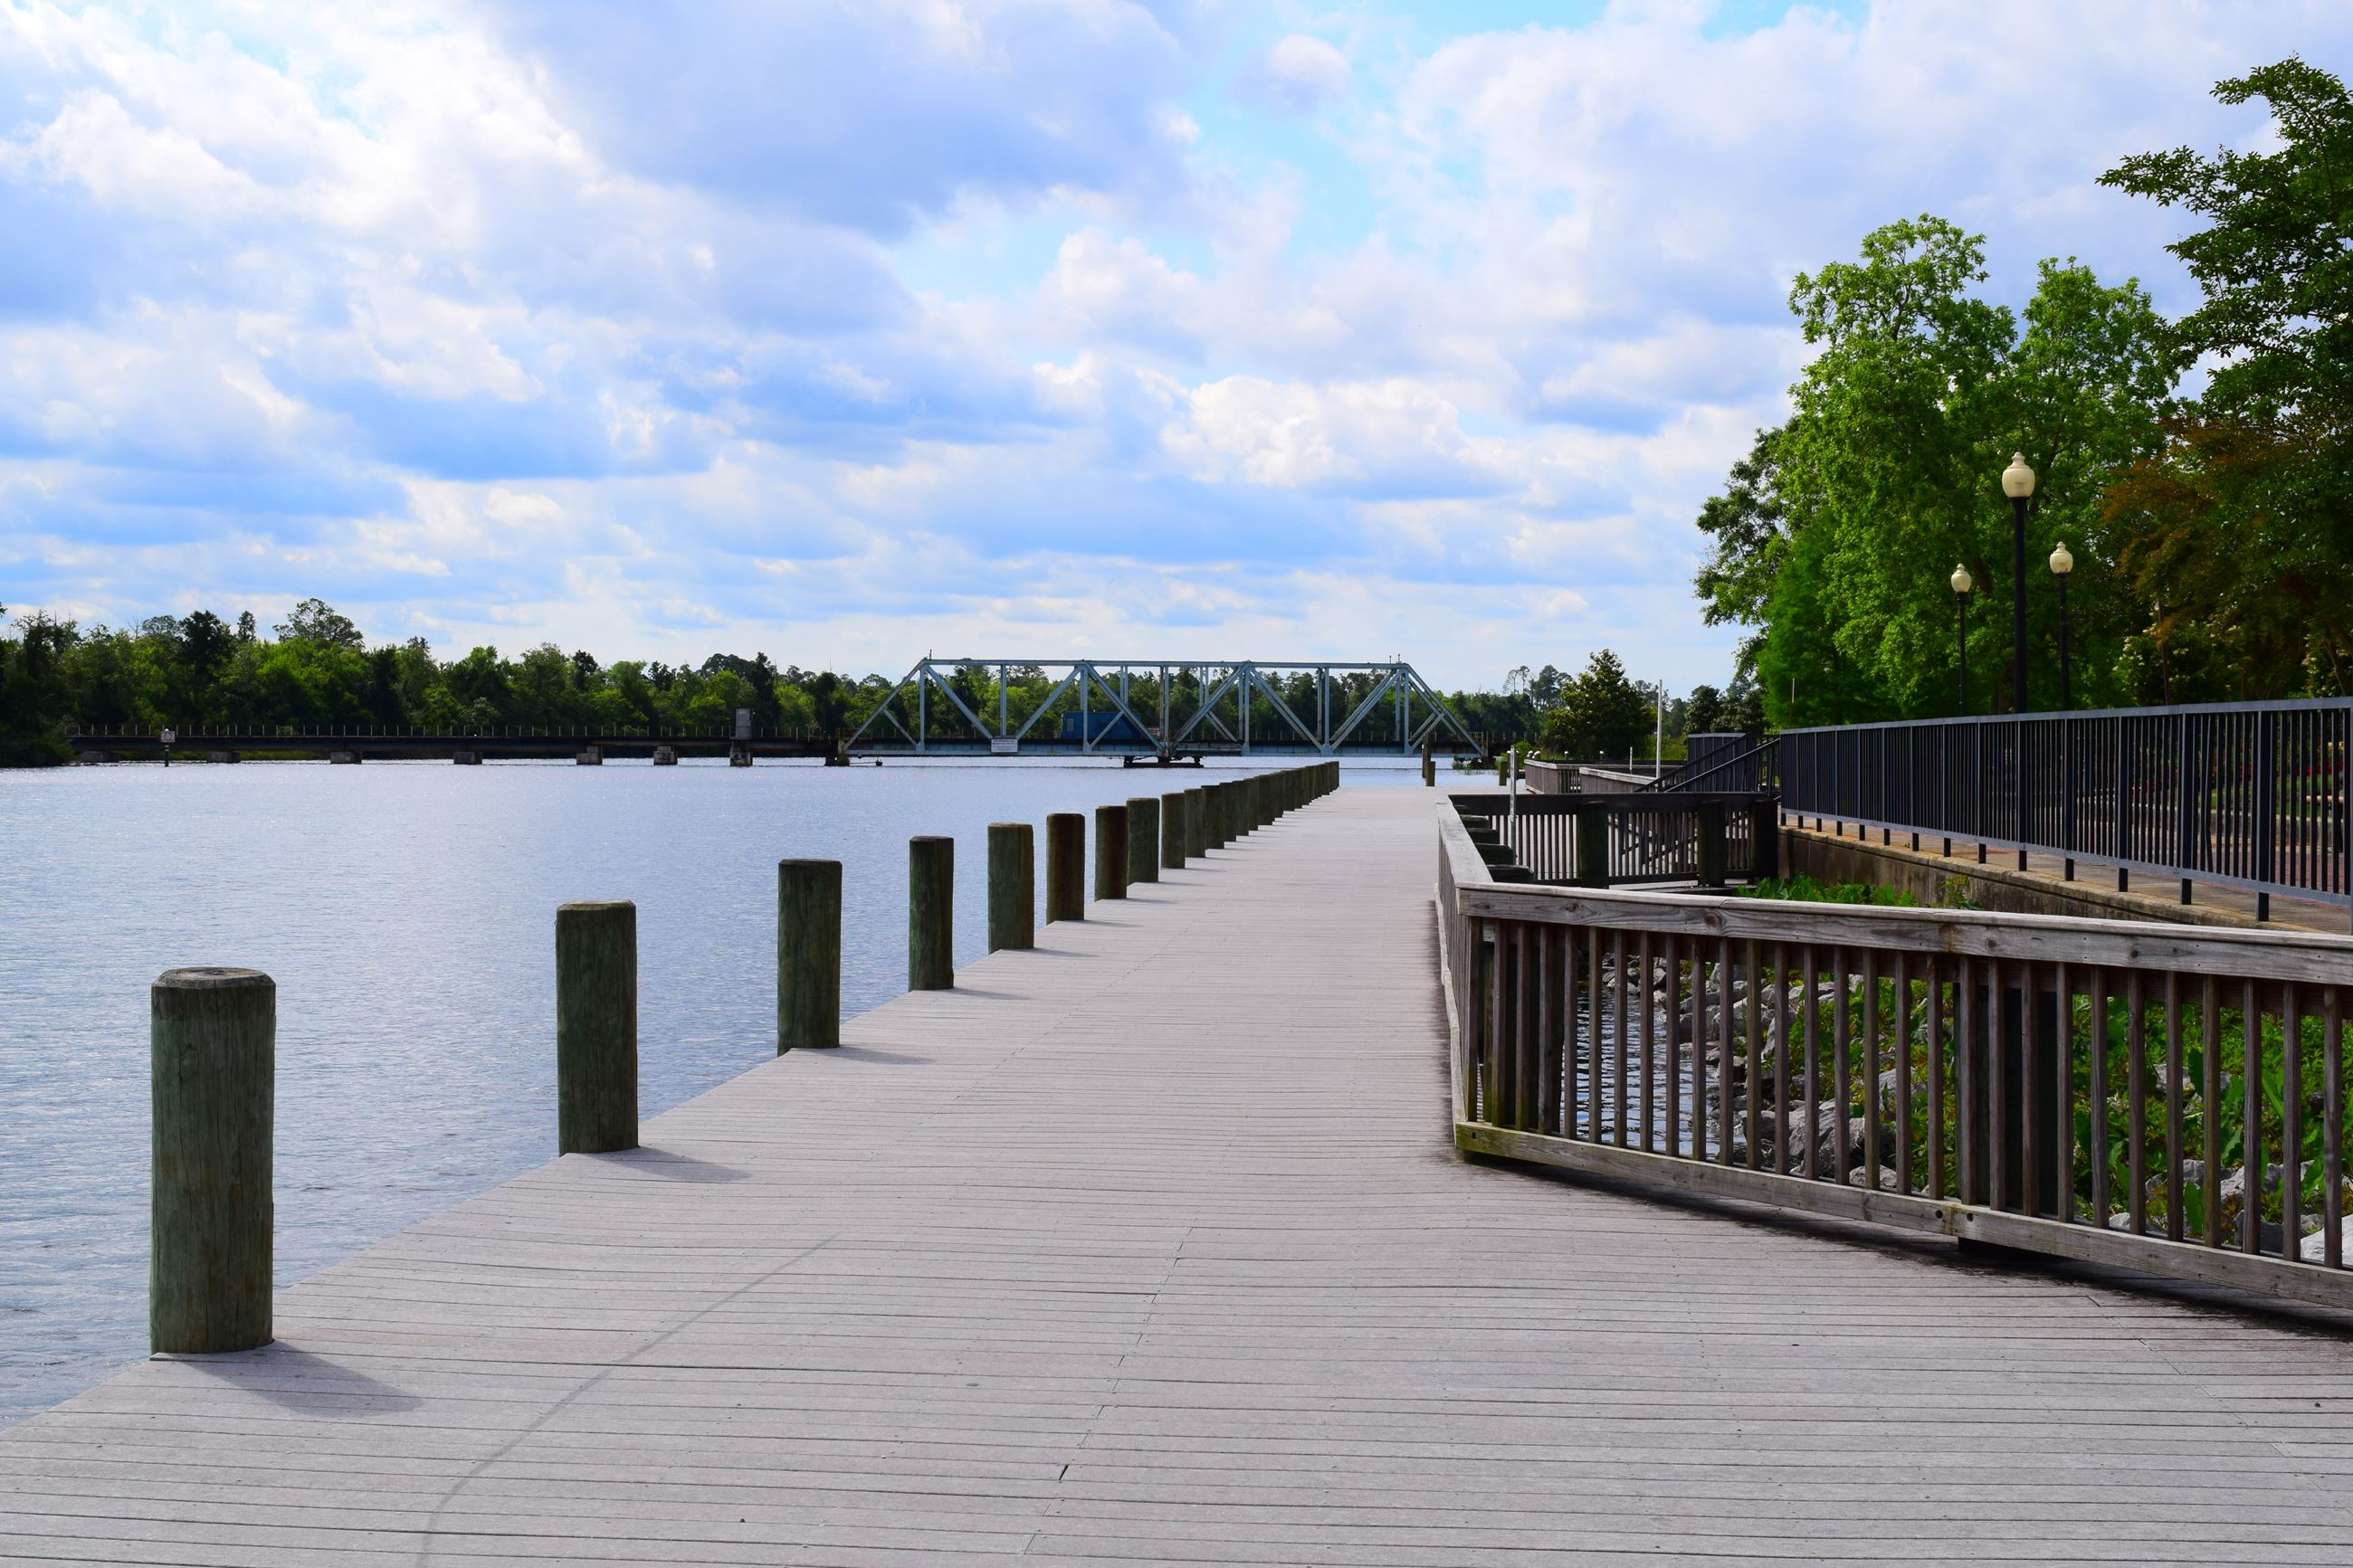 The pier at Riverwalk Park in downtown Milton facing south.